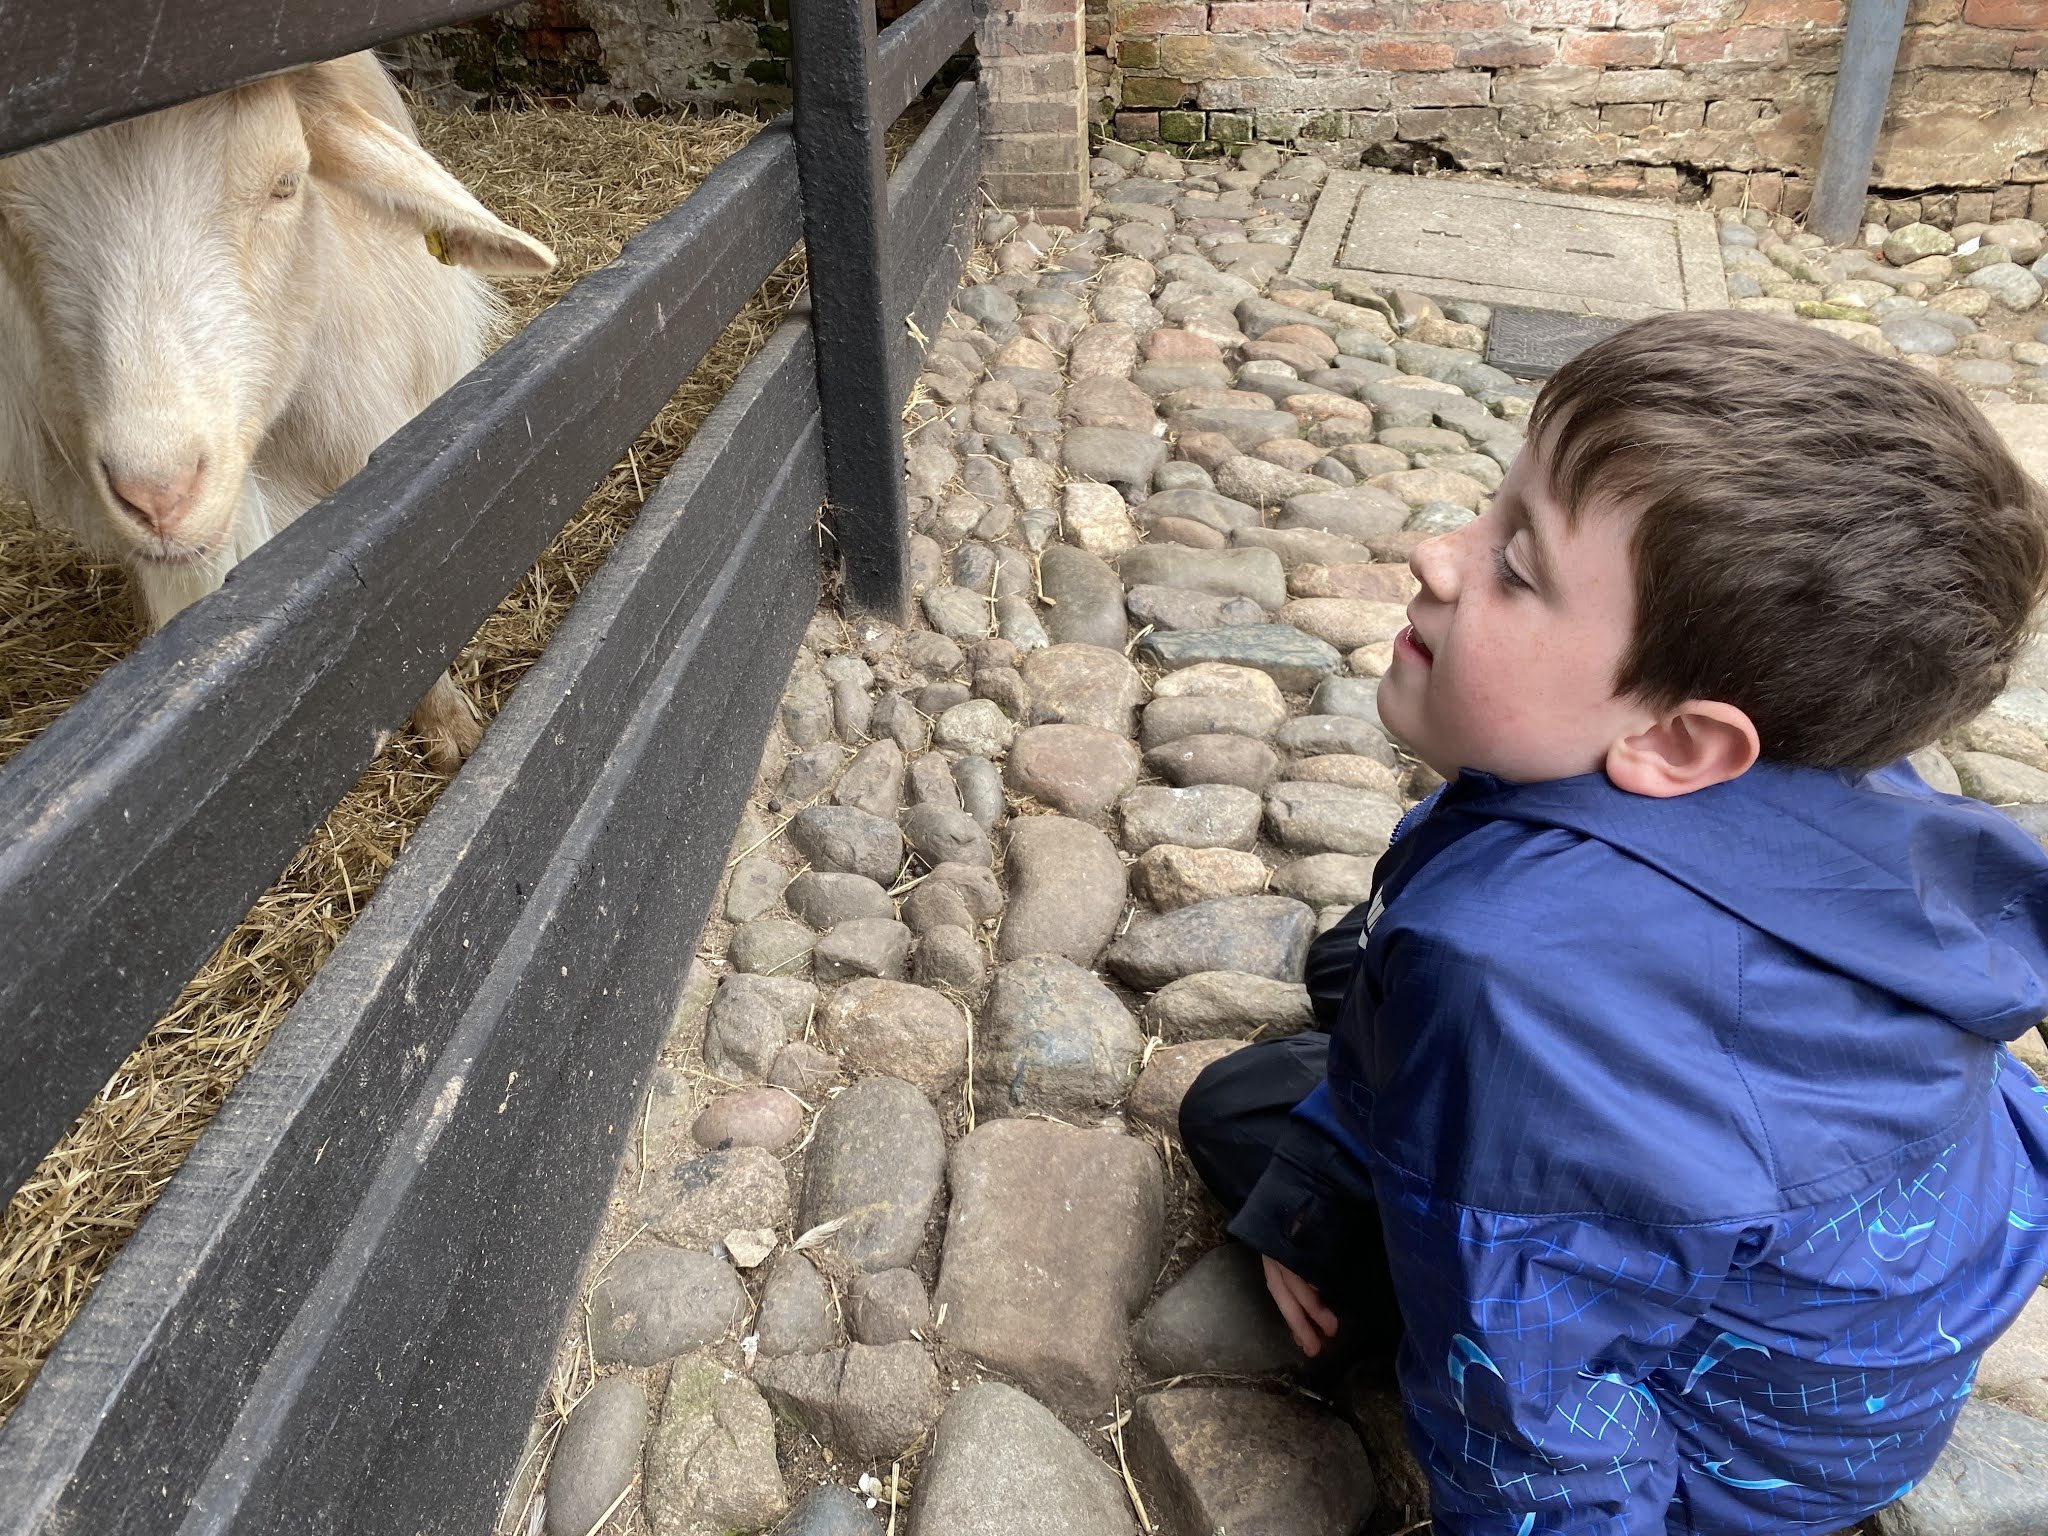 Boy looking at a goat